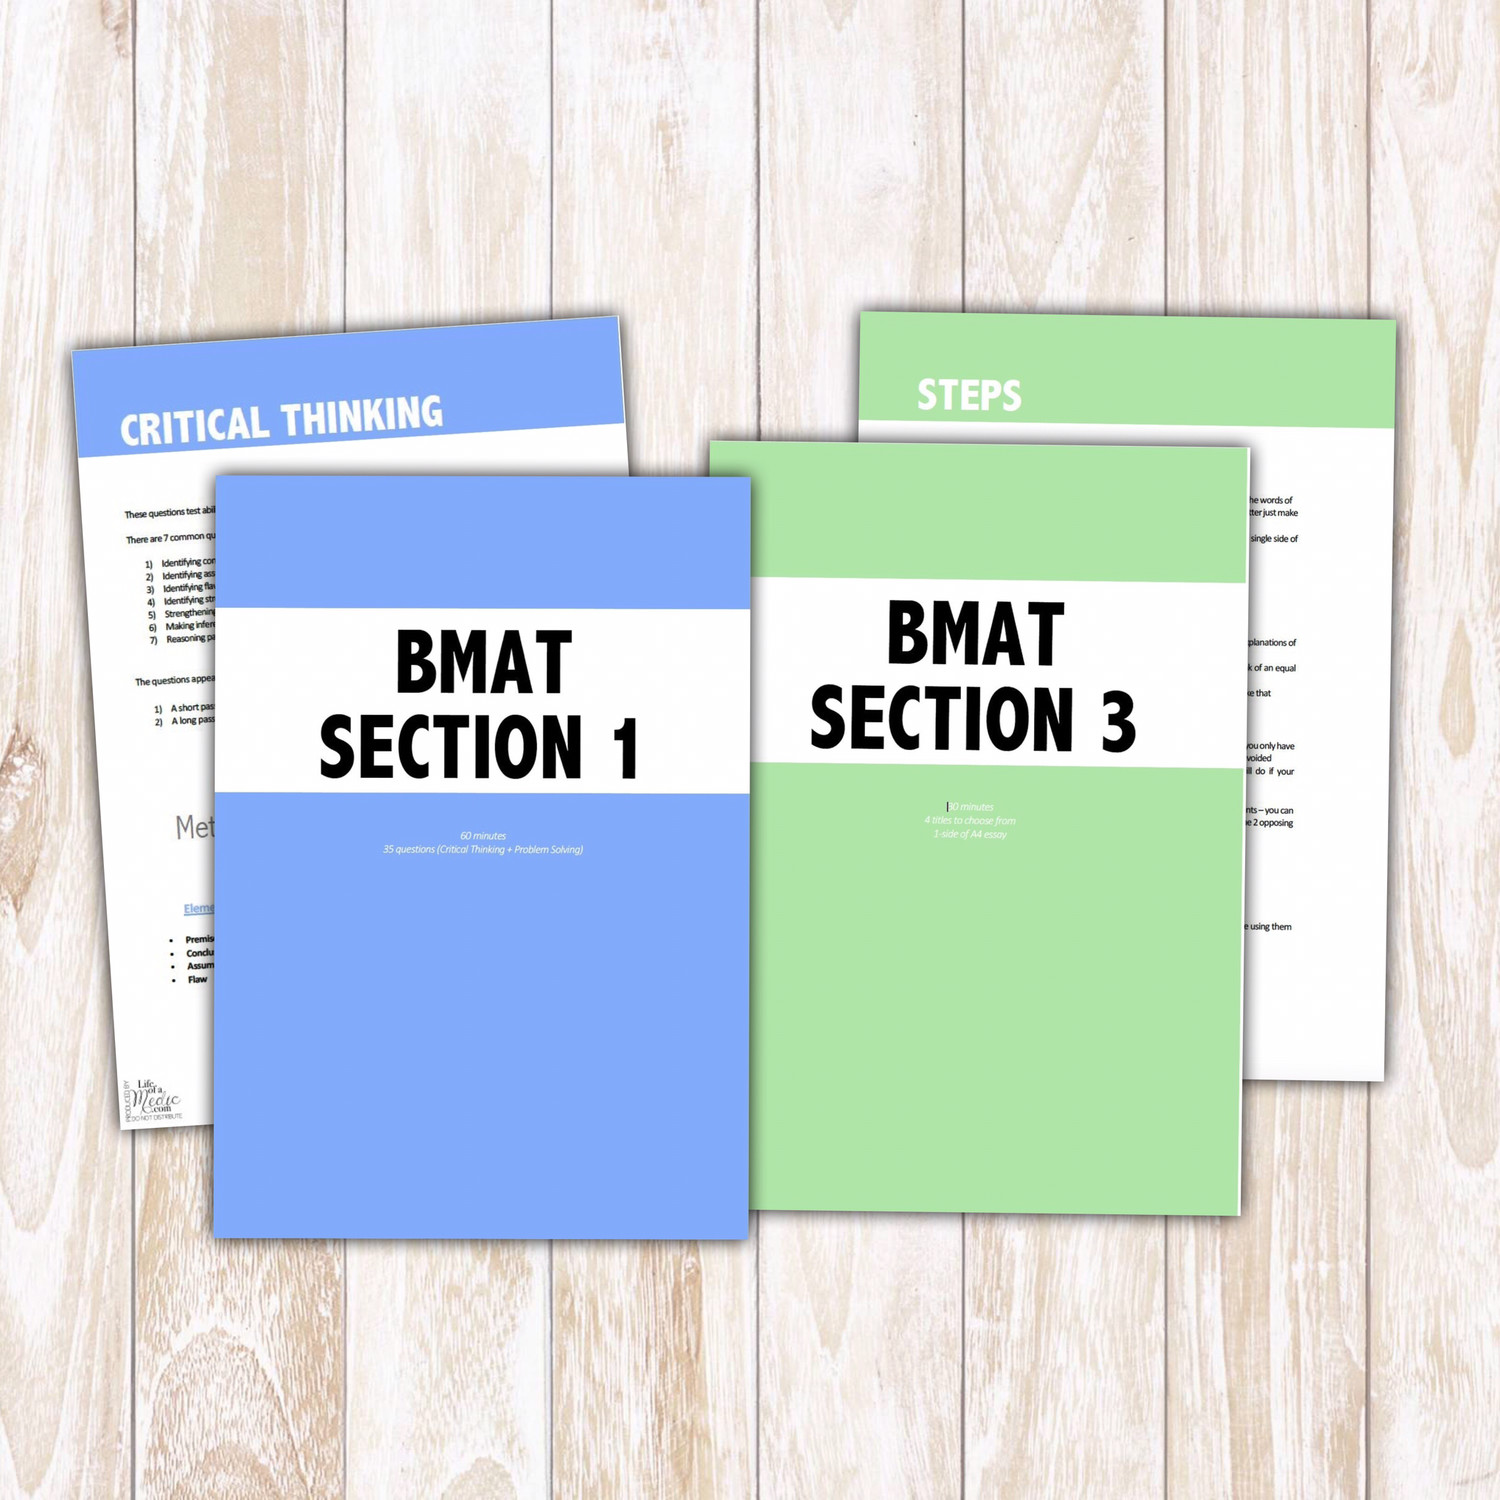 BMAT Notes | Section 1 & 3 Tips & Strategies